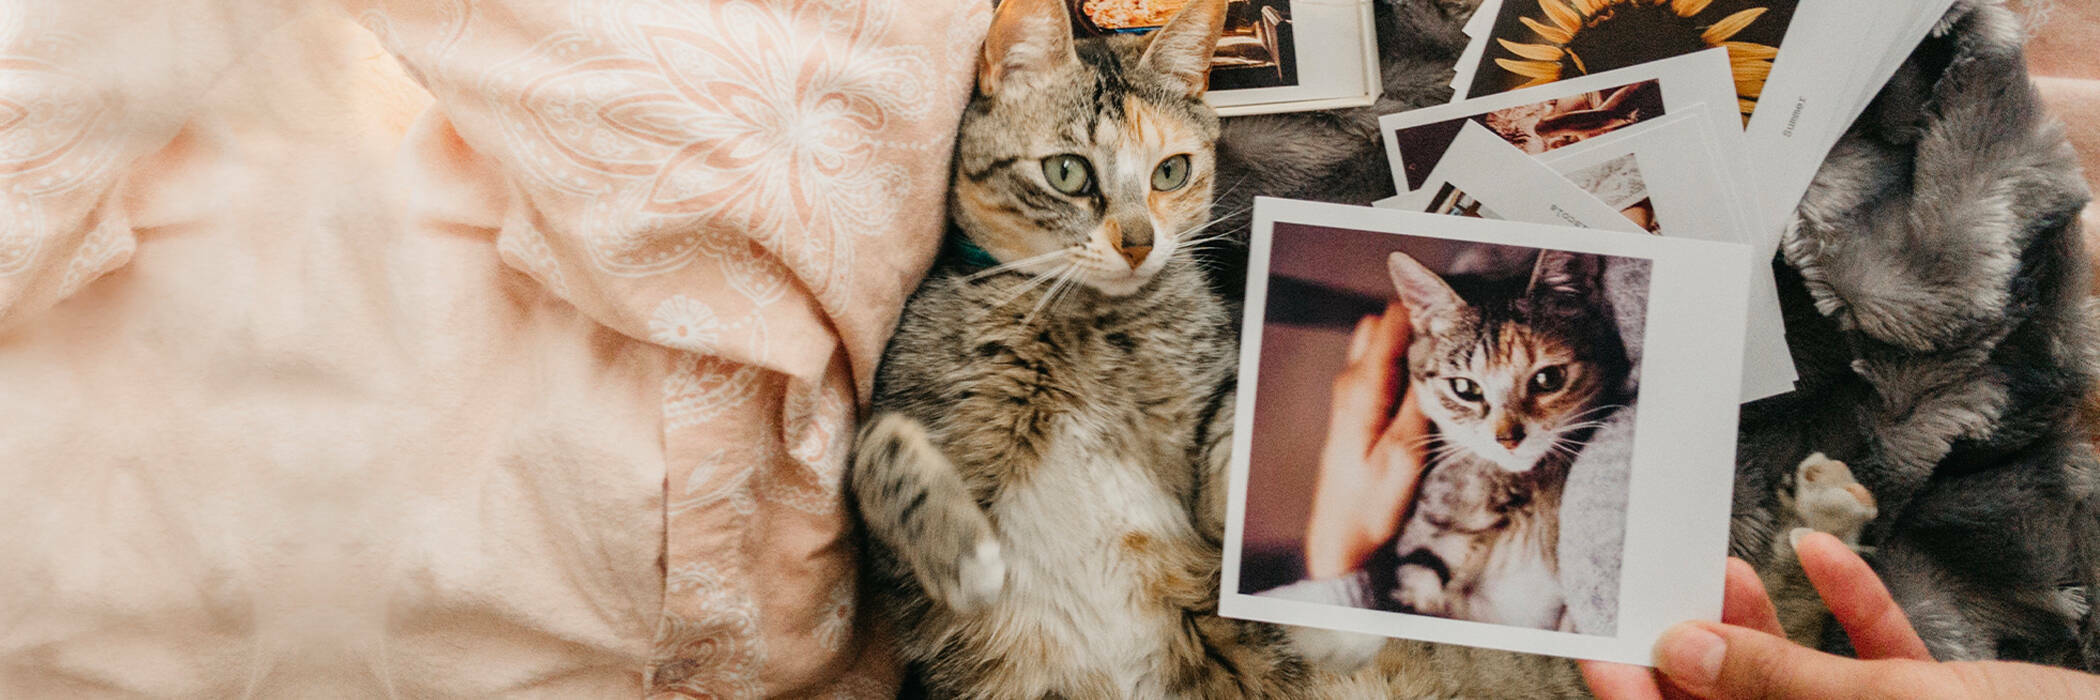 Cat lying down in bed with several retro photos.